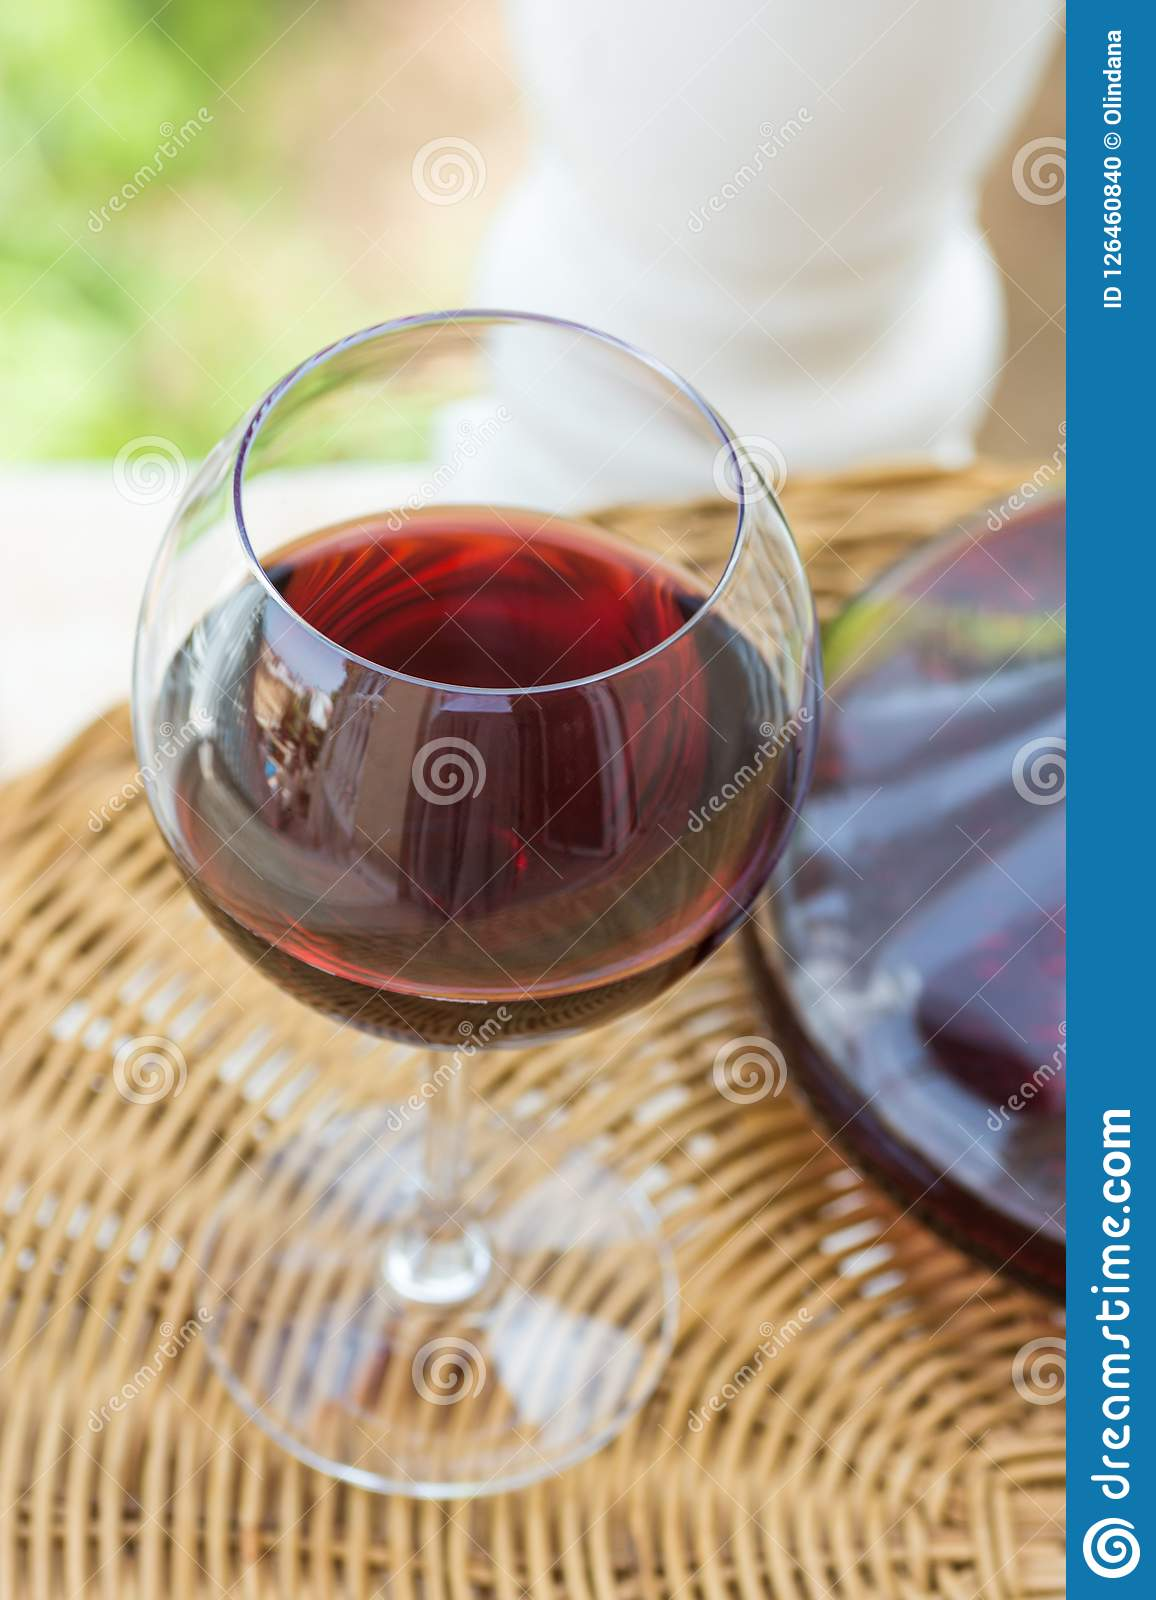 Glass with Red Wine and Crystal Decanter on Wicker Table in Garden Terrace of Luxurious Villa or Mansion. Authentic Lifestyle